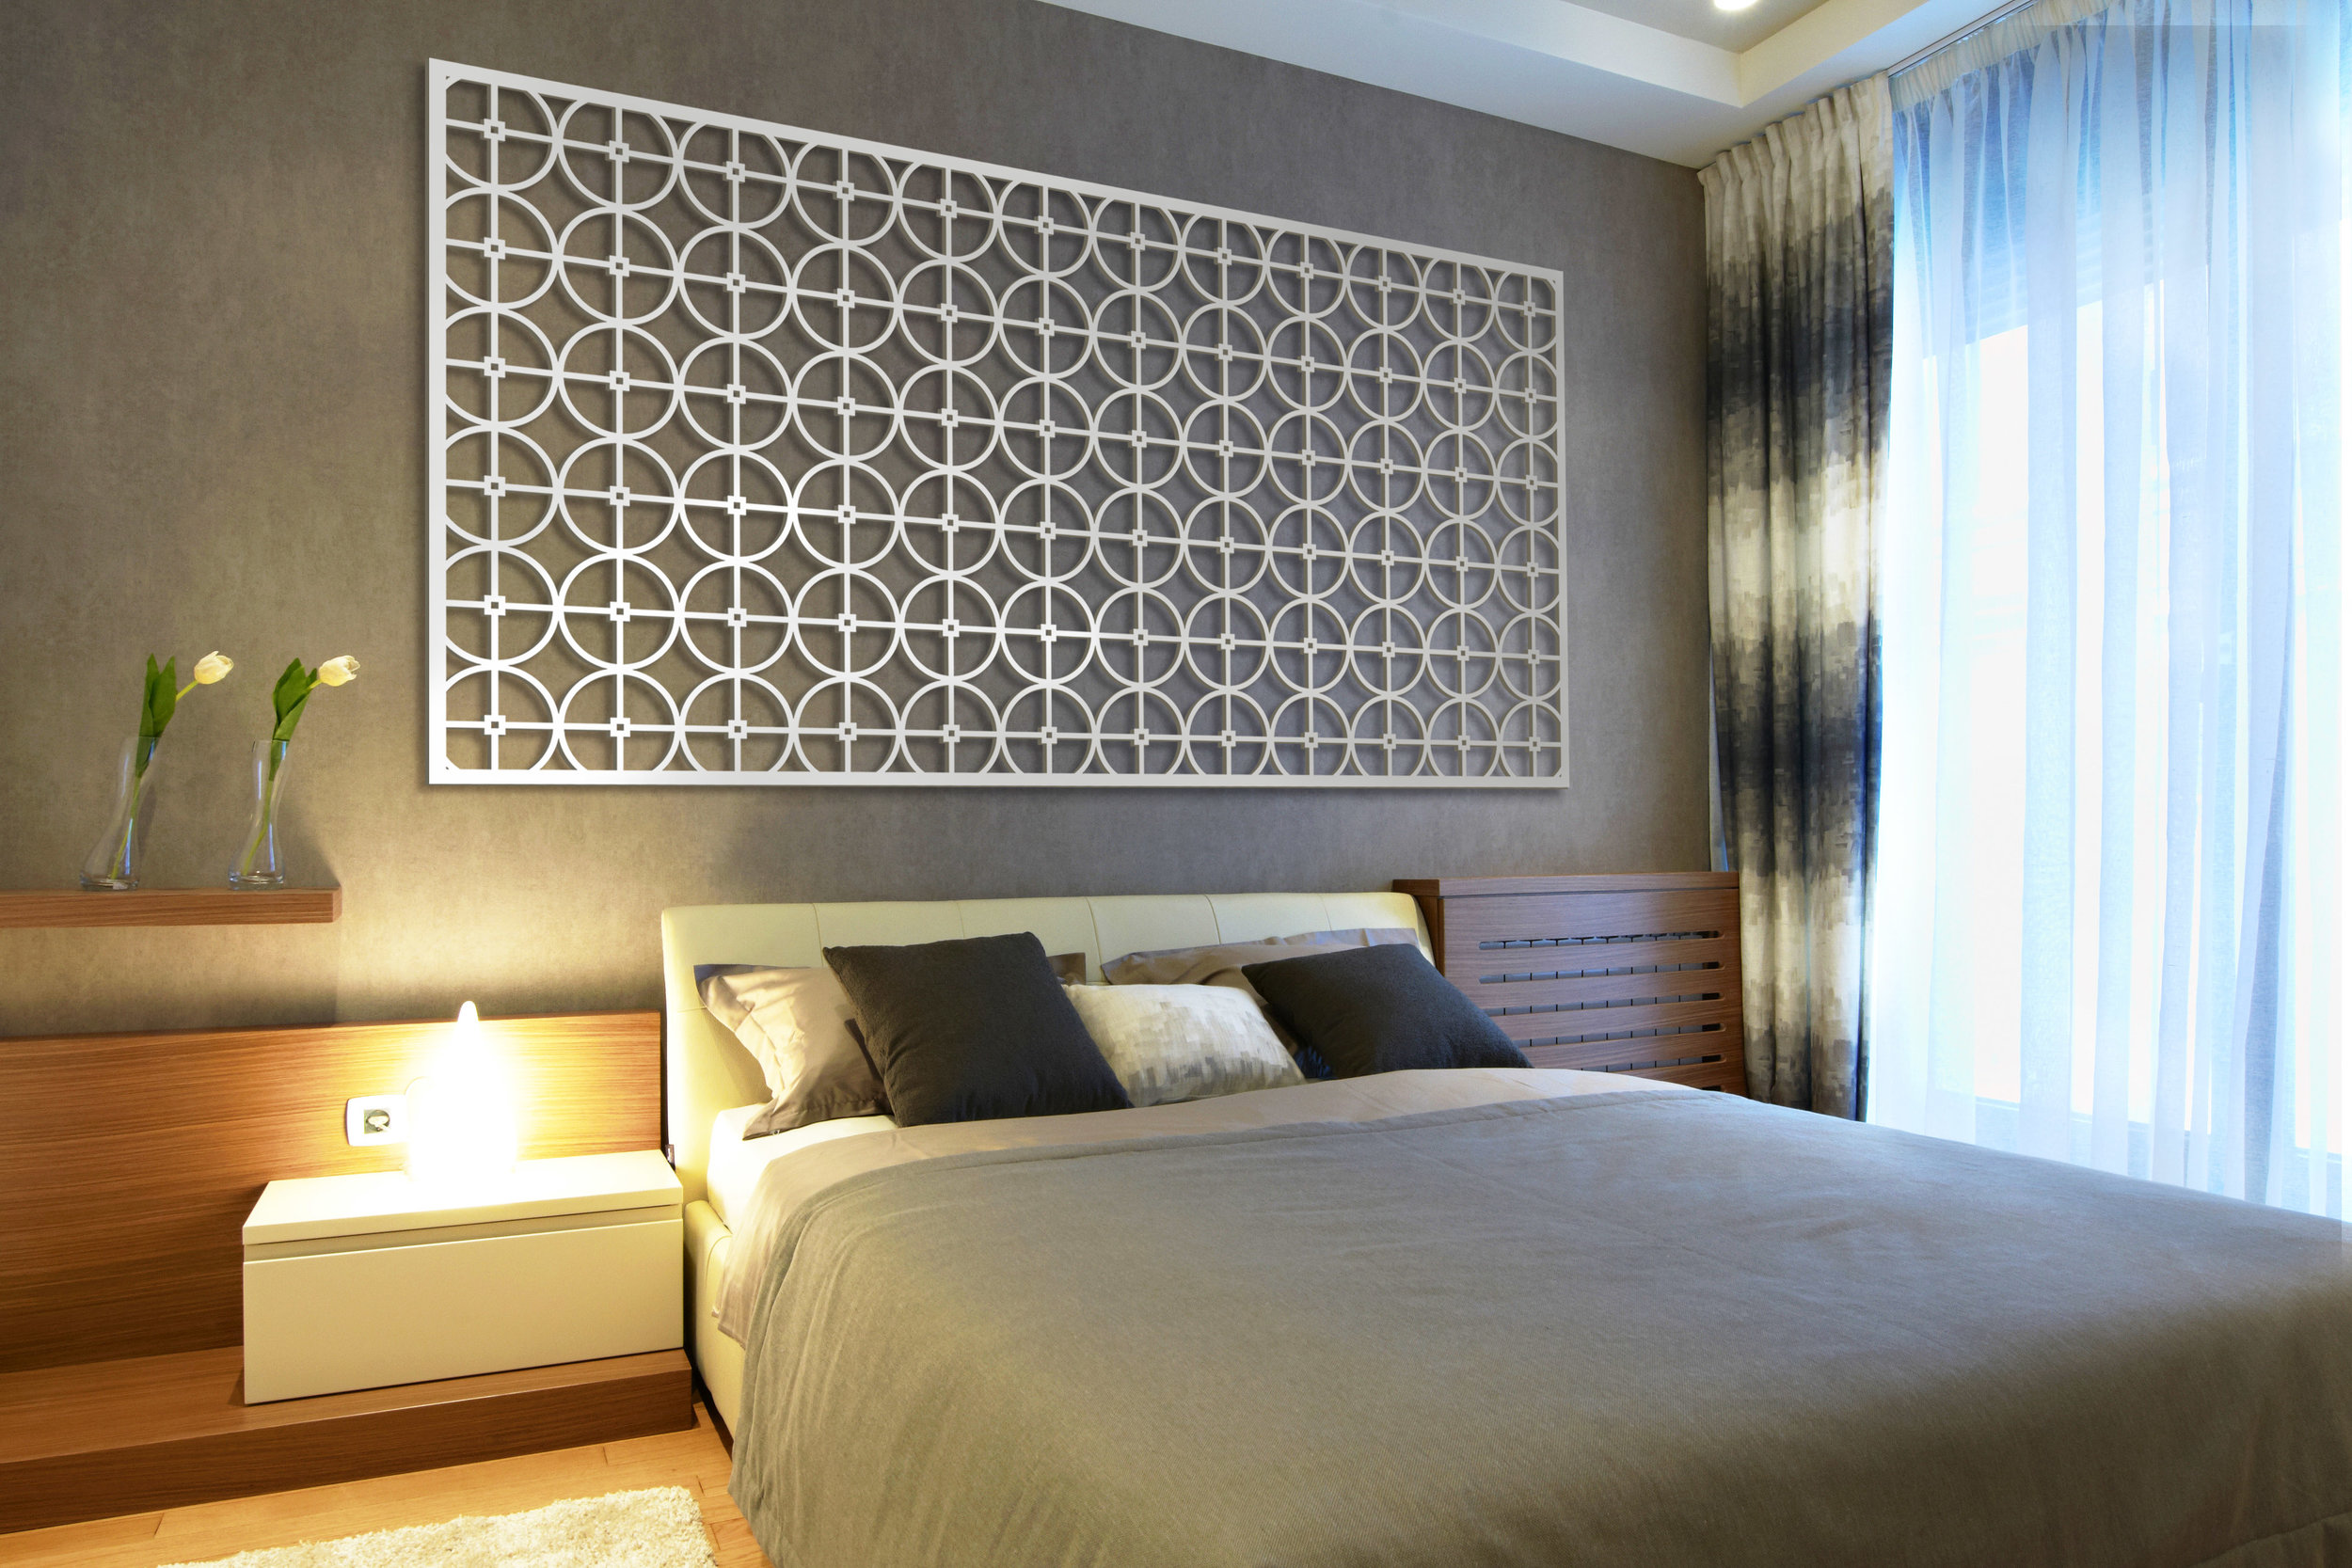 Installation Rendering C   Circles Grille decorative hotel wall panel - painted